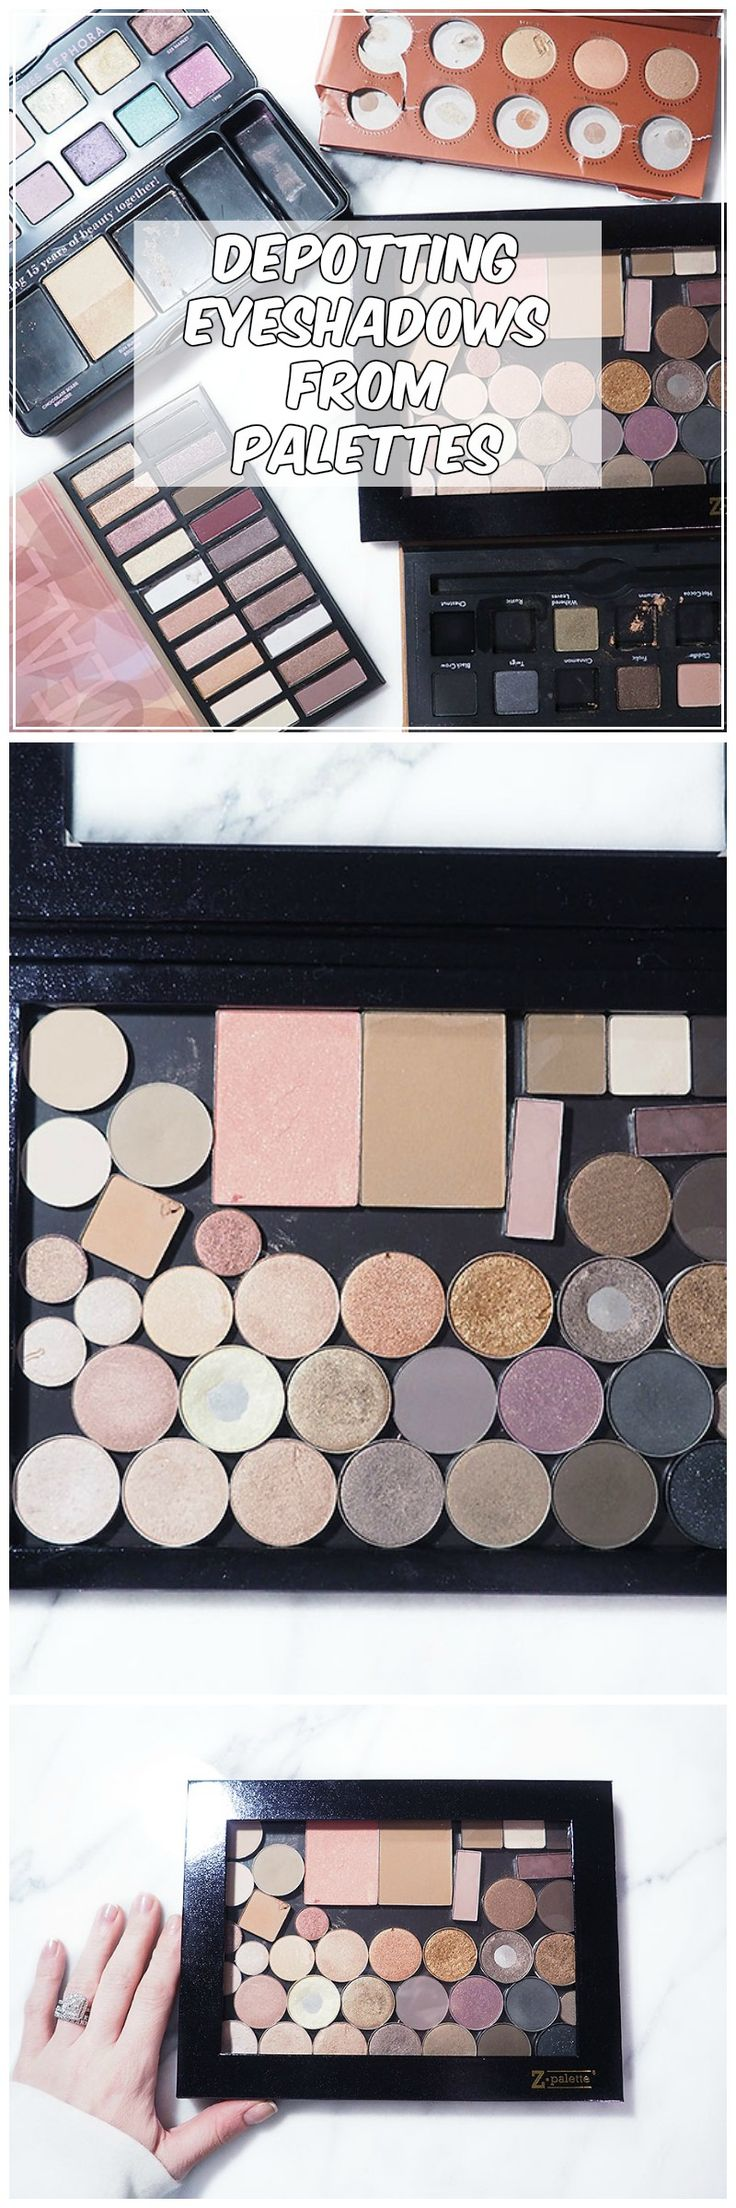 How To Depot Eyeshadows and Use a Z-Palette — Pretty Shiny Sparkly